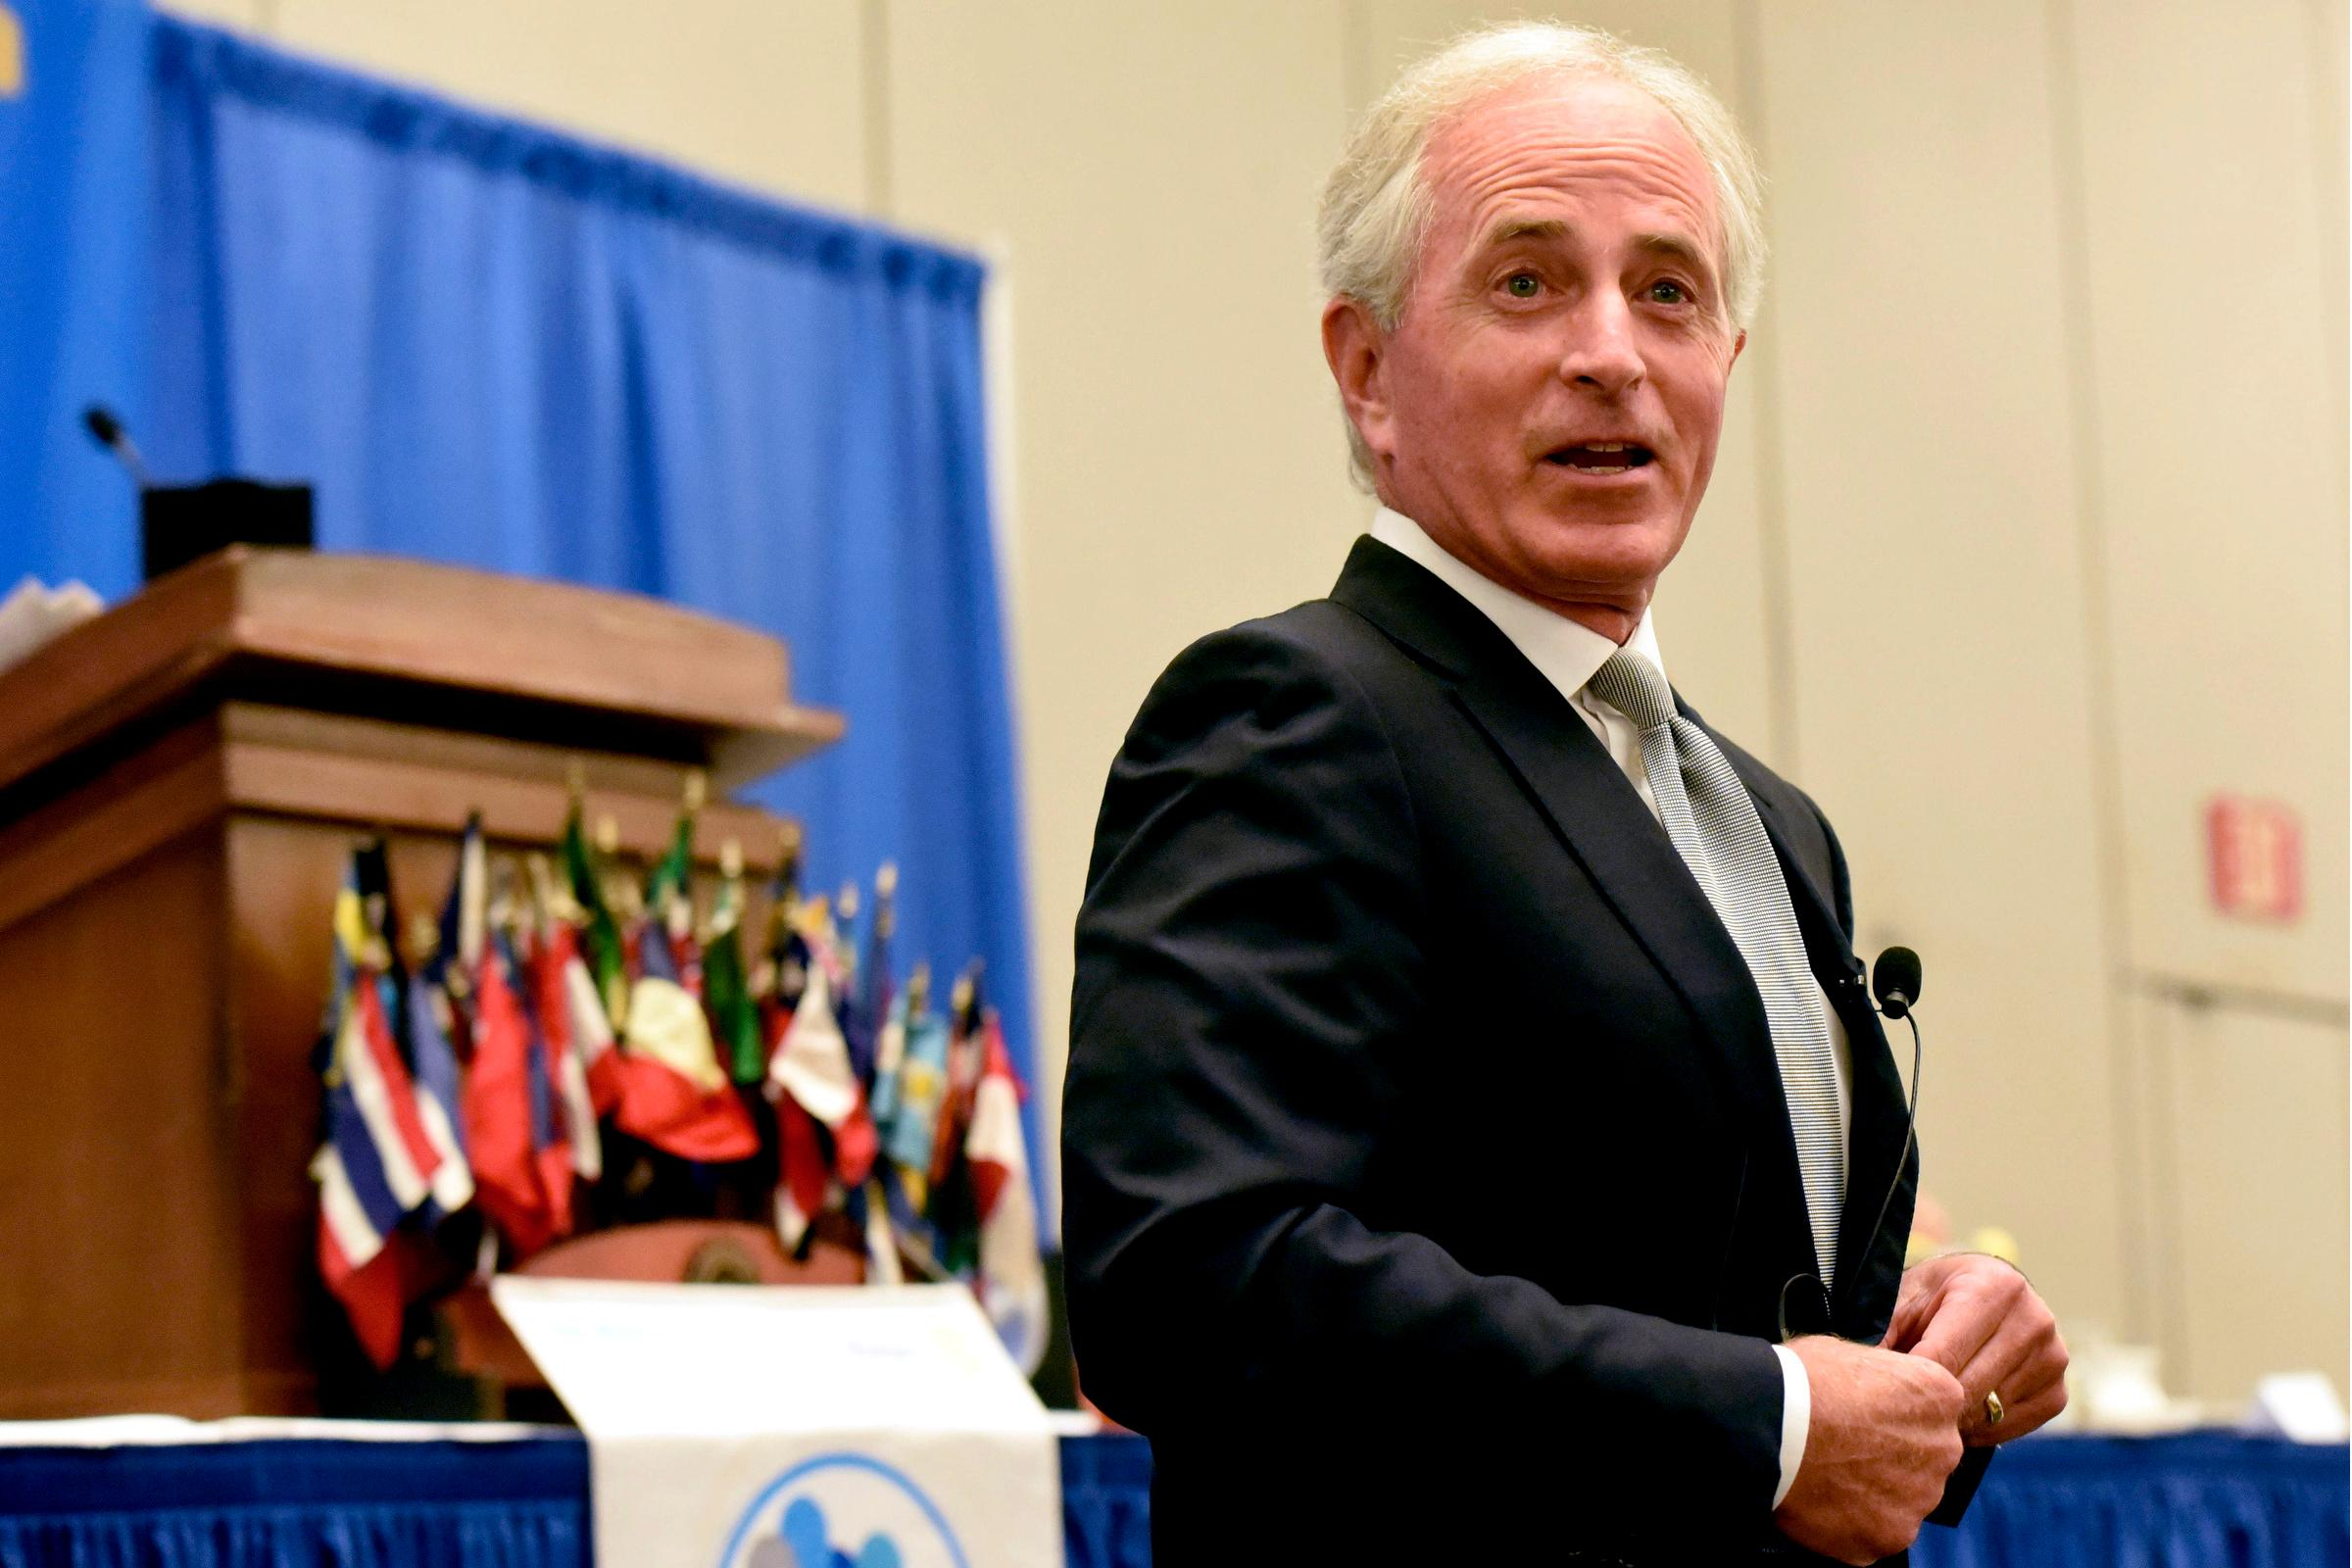 Sen. Bob Corker, R-Tenn. takes questions from attendees at the Rotary Club of Chattanooga, Tenn., Thursday, Aug. 17, 2017.  Bombarded by the sharpest attacks yet from fellow Republicans, President Donald Trump on Thursday, Aug. 17, 2017, dug into his defense of racist groups by attacking members of own party and renouncing the rising movement to pull down monuments to Confederate icons. (Tim Barber/Chattanooga Times Free Press via AP)/Chattanooga Times Free Press via AP)